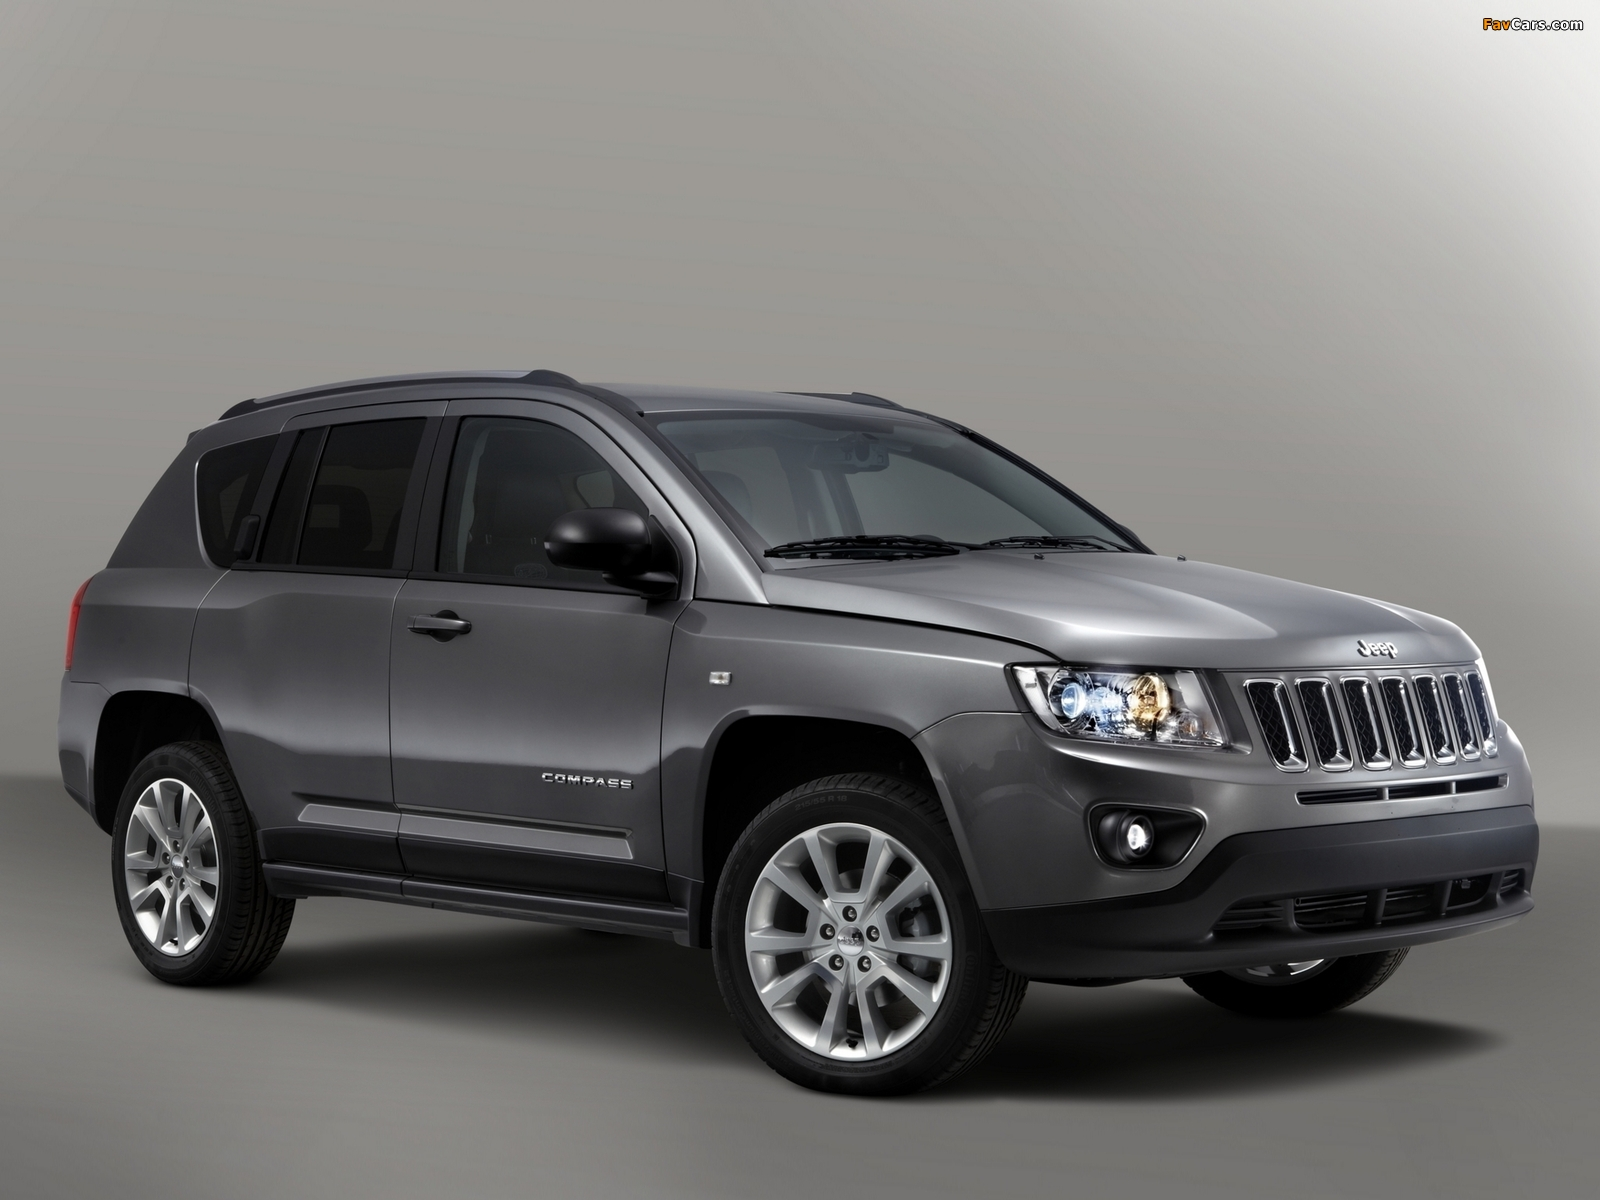 Jeep Compass Overland 2012 images (1600 x 1200)